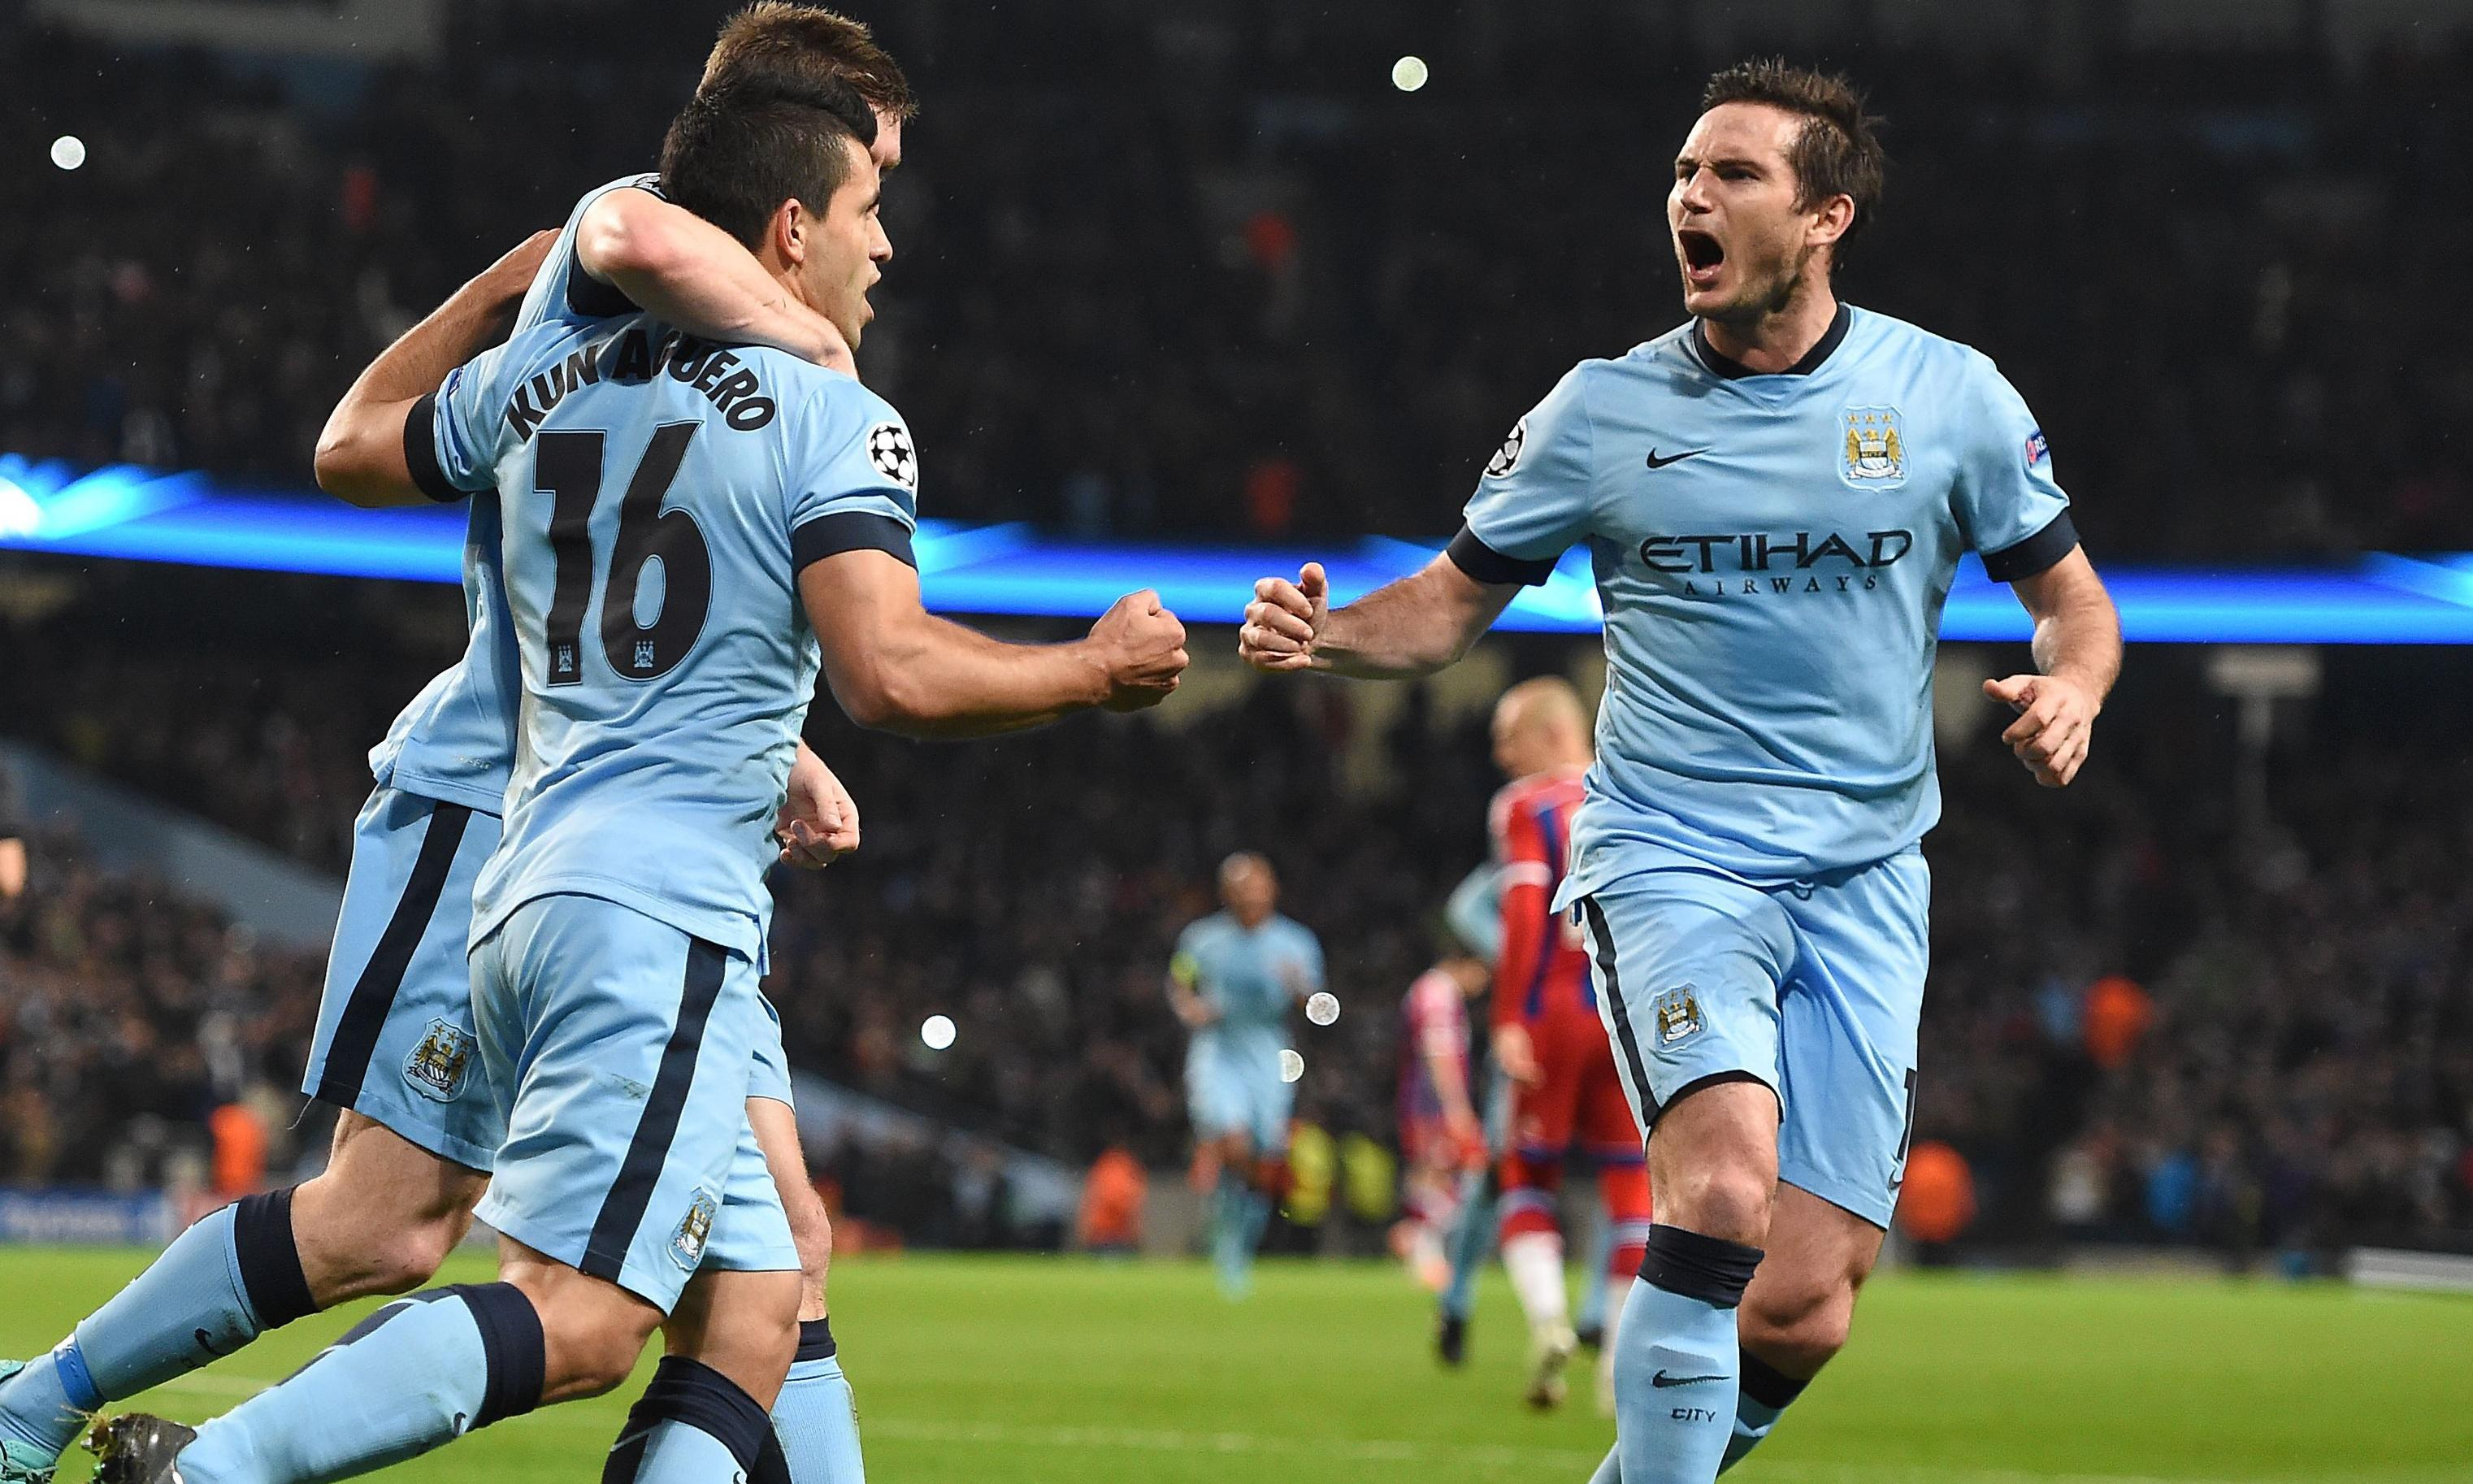 Frank Lampard's season at Manchester City helped shape his coaching career